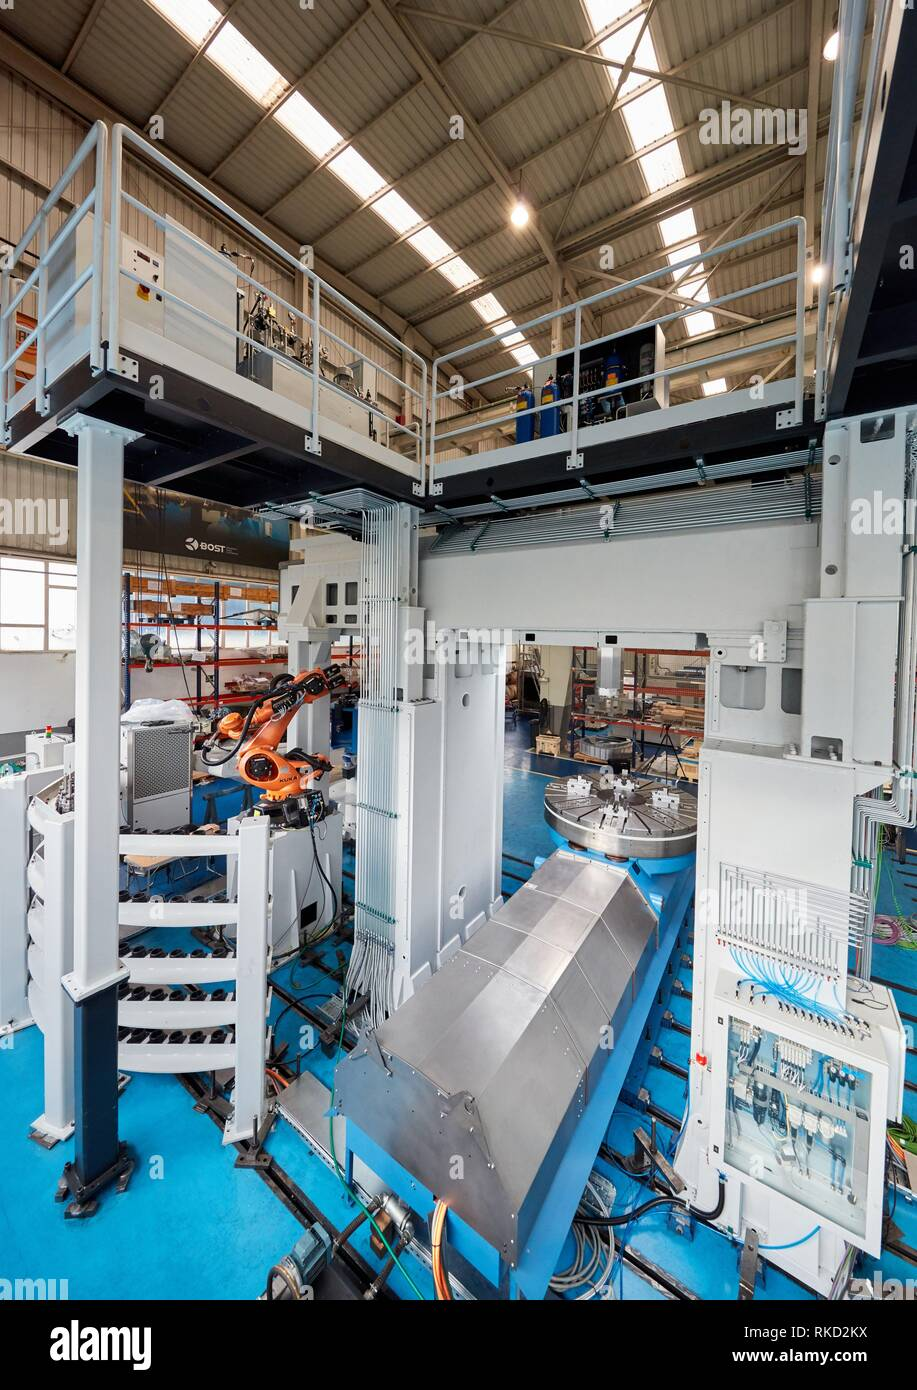 Robot tool changer, Vertical lathe, Machining Center, CNC, Design, manufacture and installation of machine tools, Gipuzkoa, Basque Country, Spain, - Stock Image